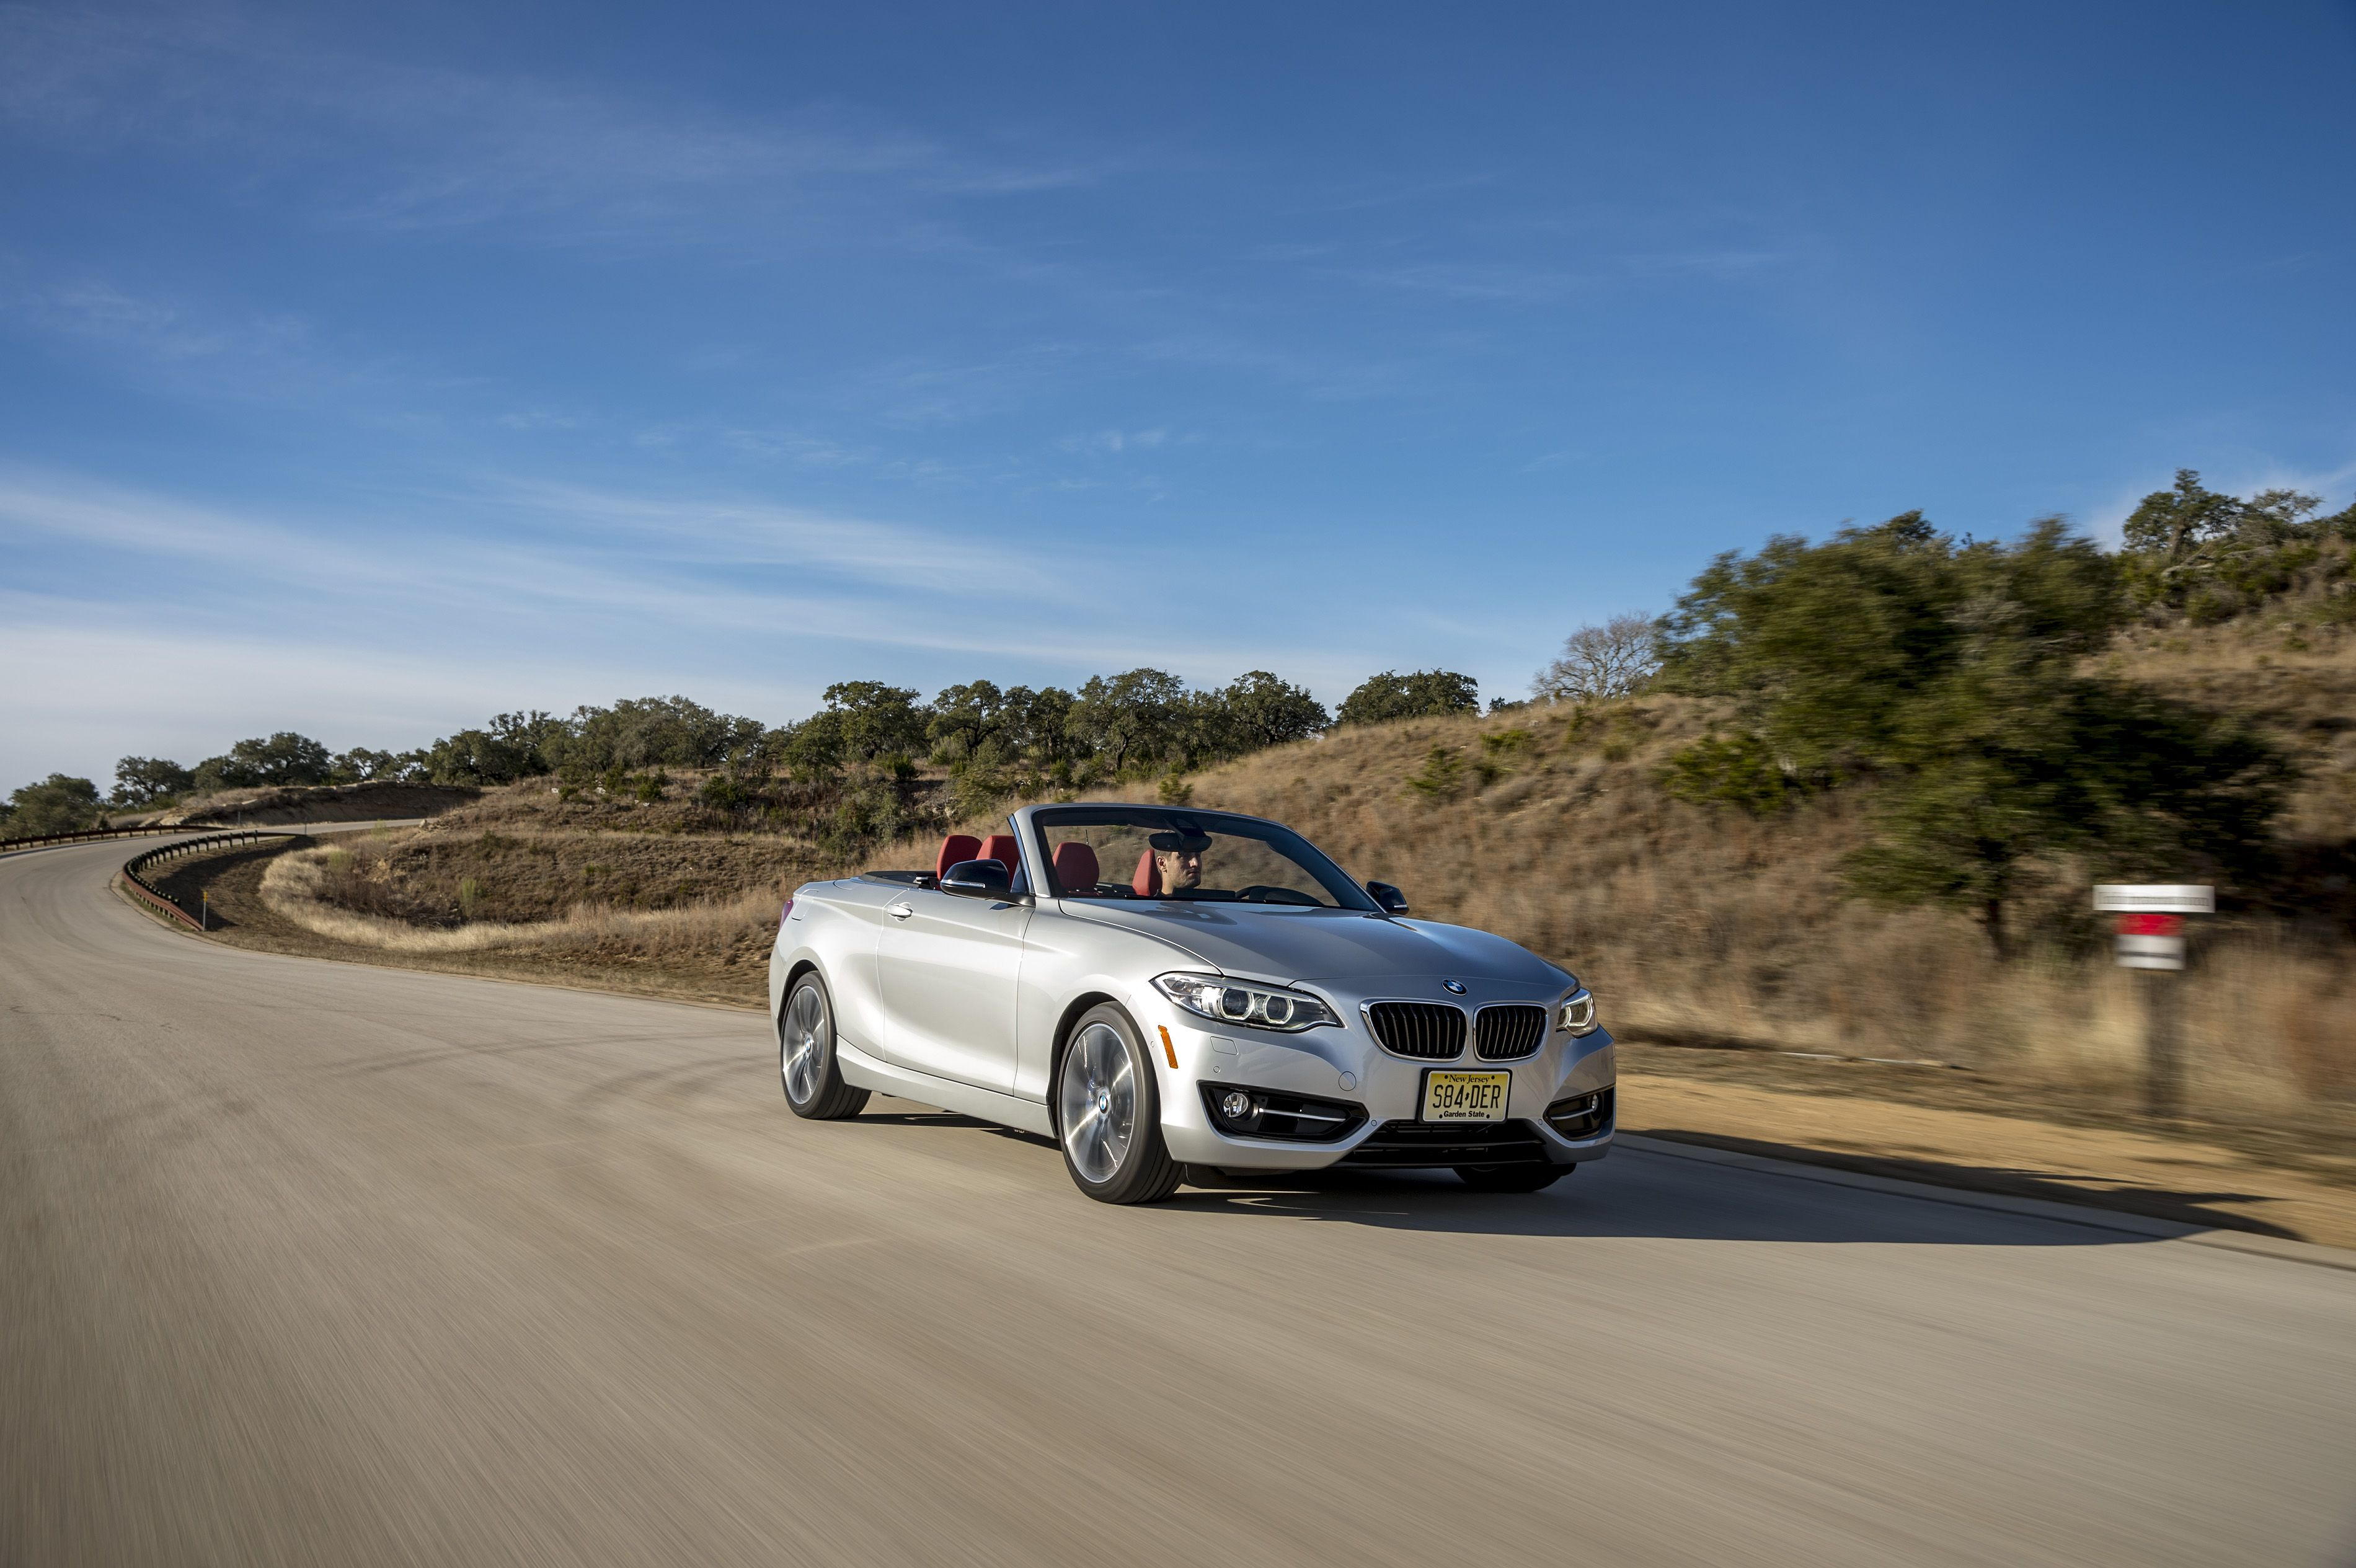 Pin By Bmw Life On Coches In 2020 Bmw Bmw 2 Convertible